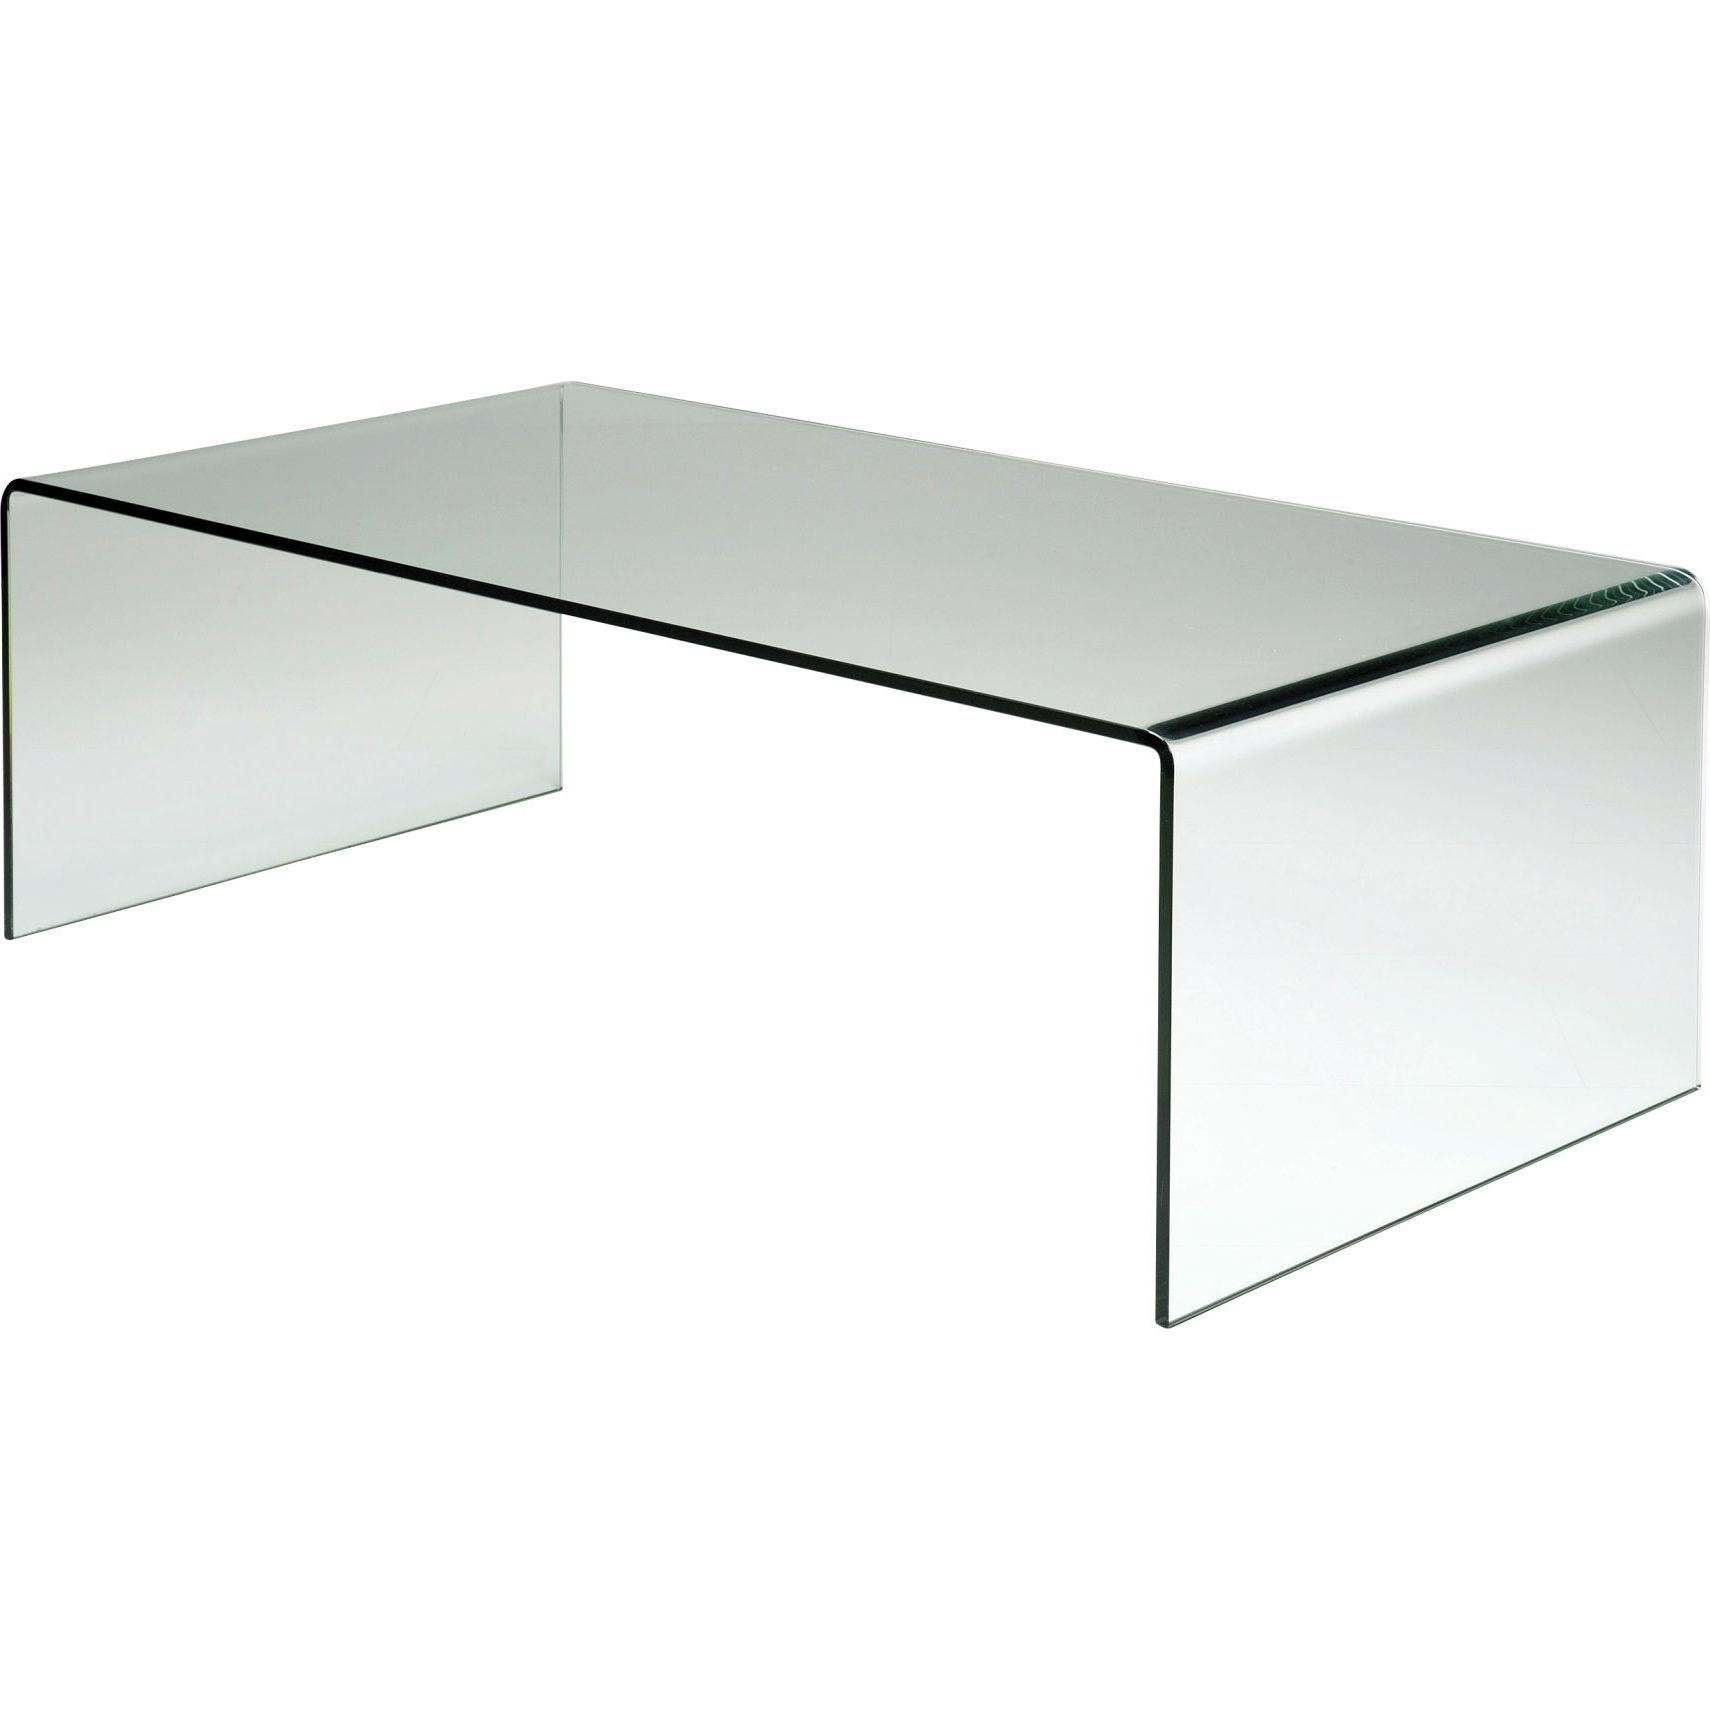 Most Popular Square Waterfall Coffee Tables With Regard To Waterfall Coffee Table (View 4 of 20)